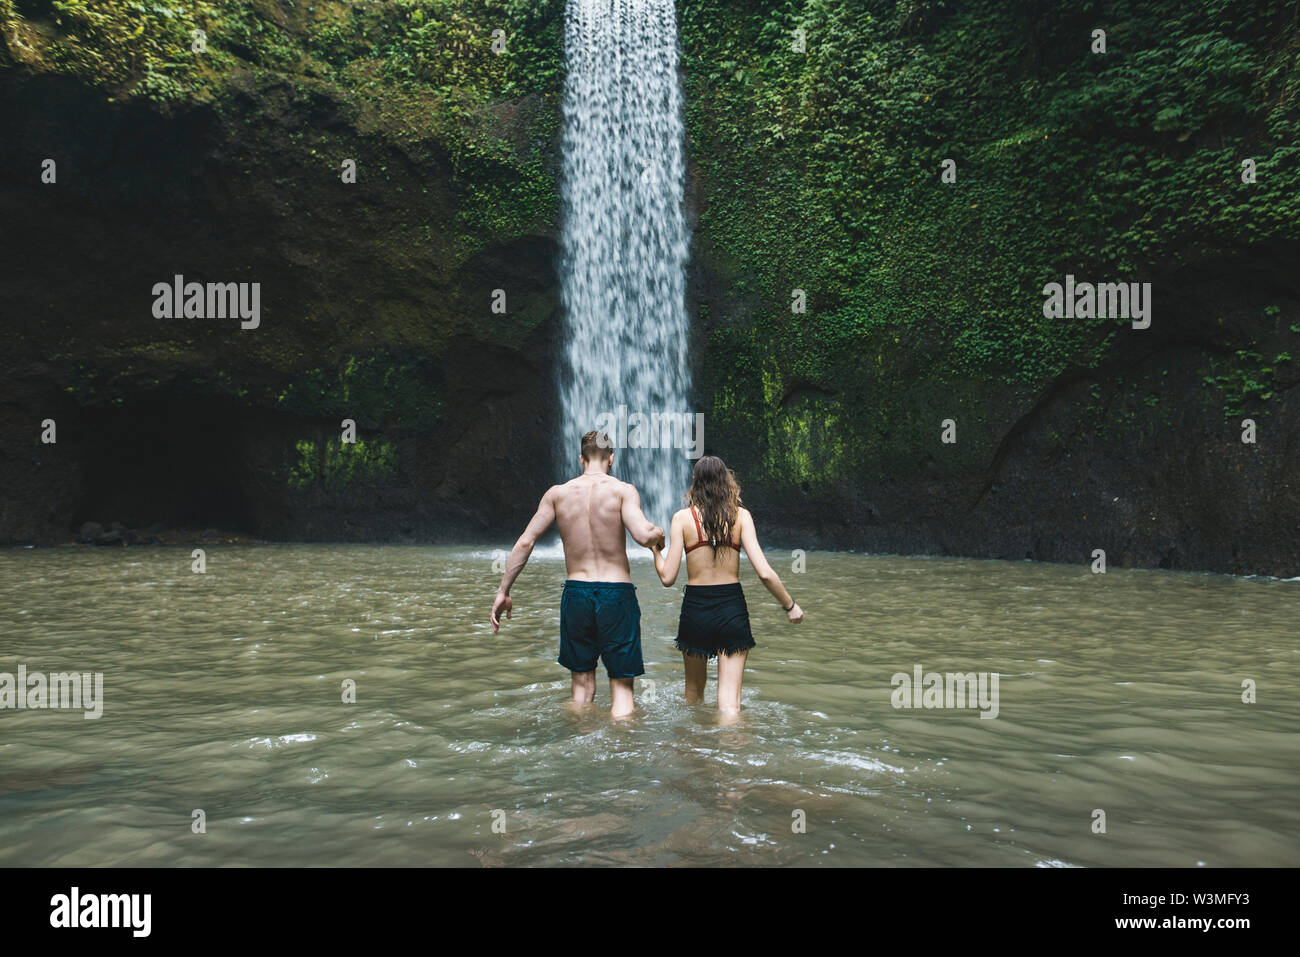 Young couple holding hands in river by Tibumana Waterfall in Bali, Indonesia - Stock Image